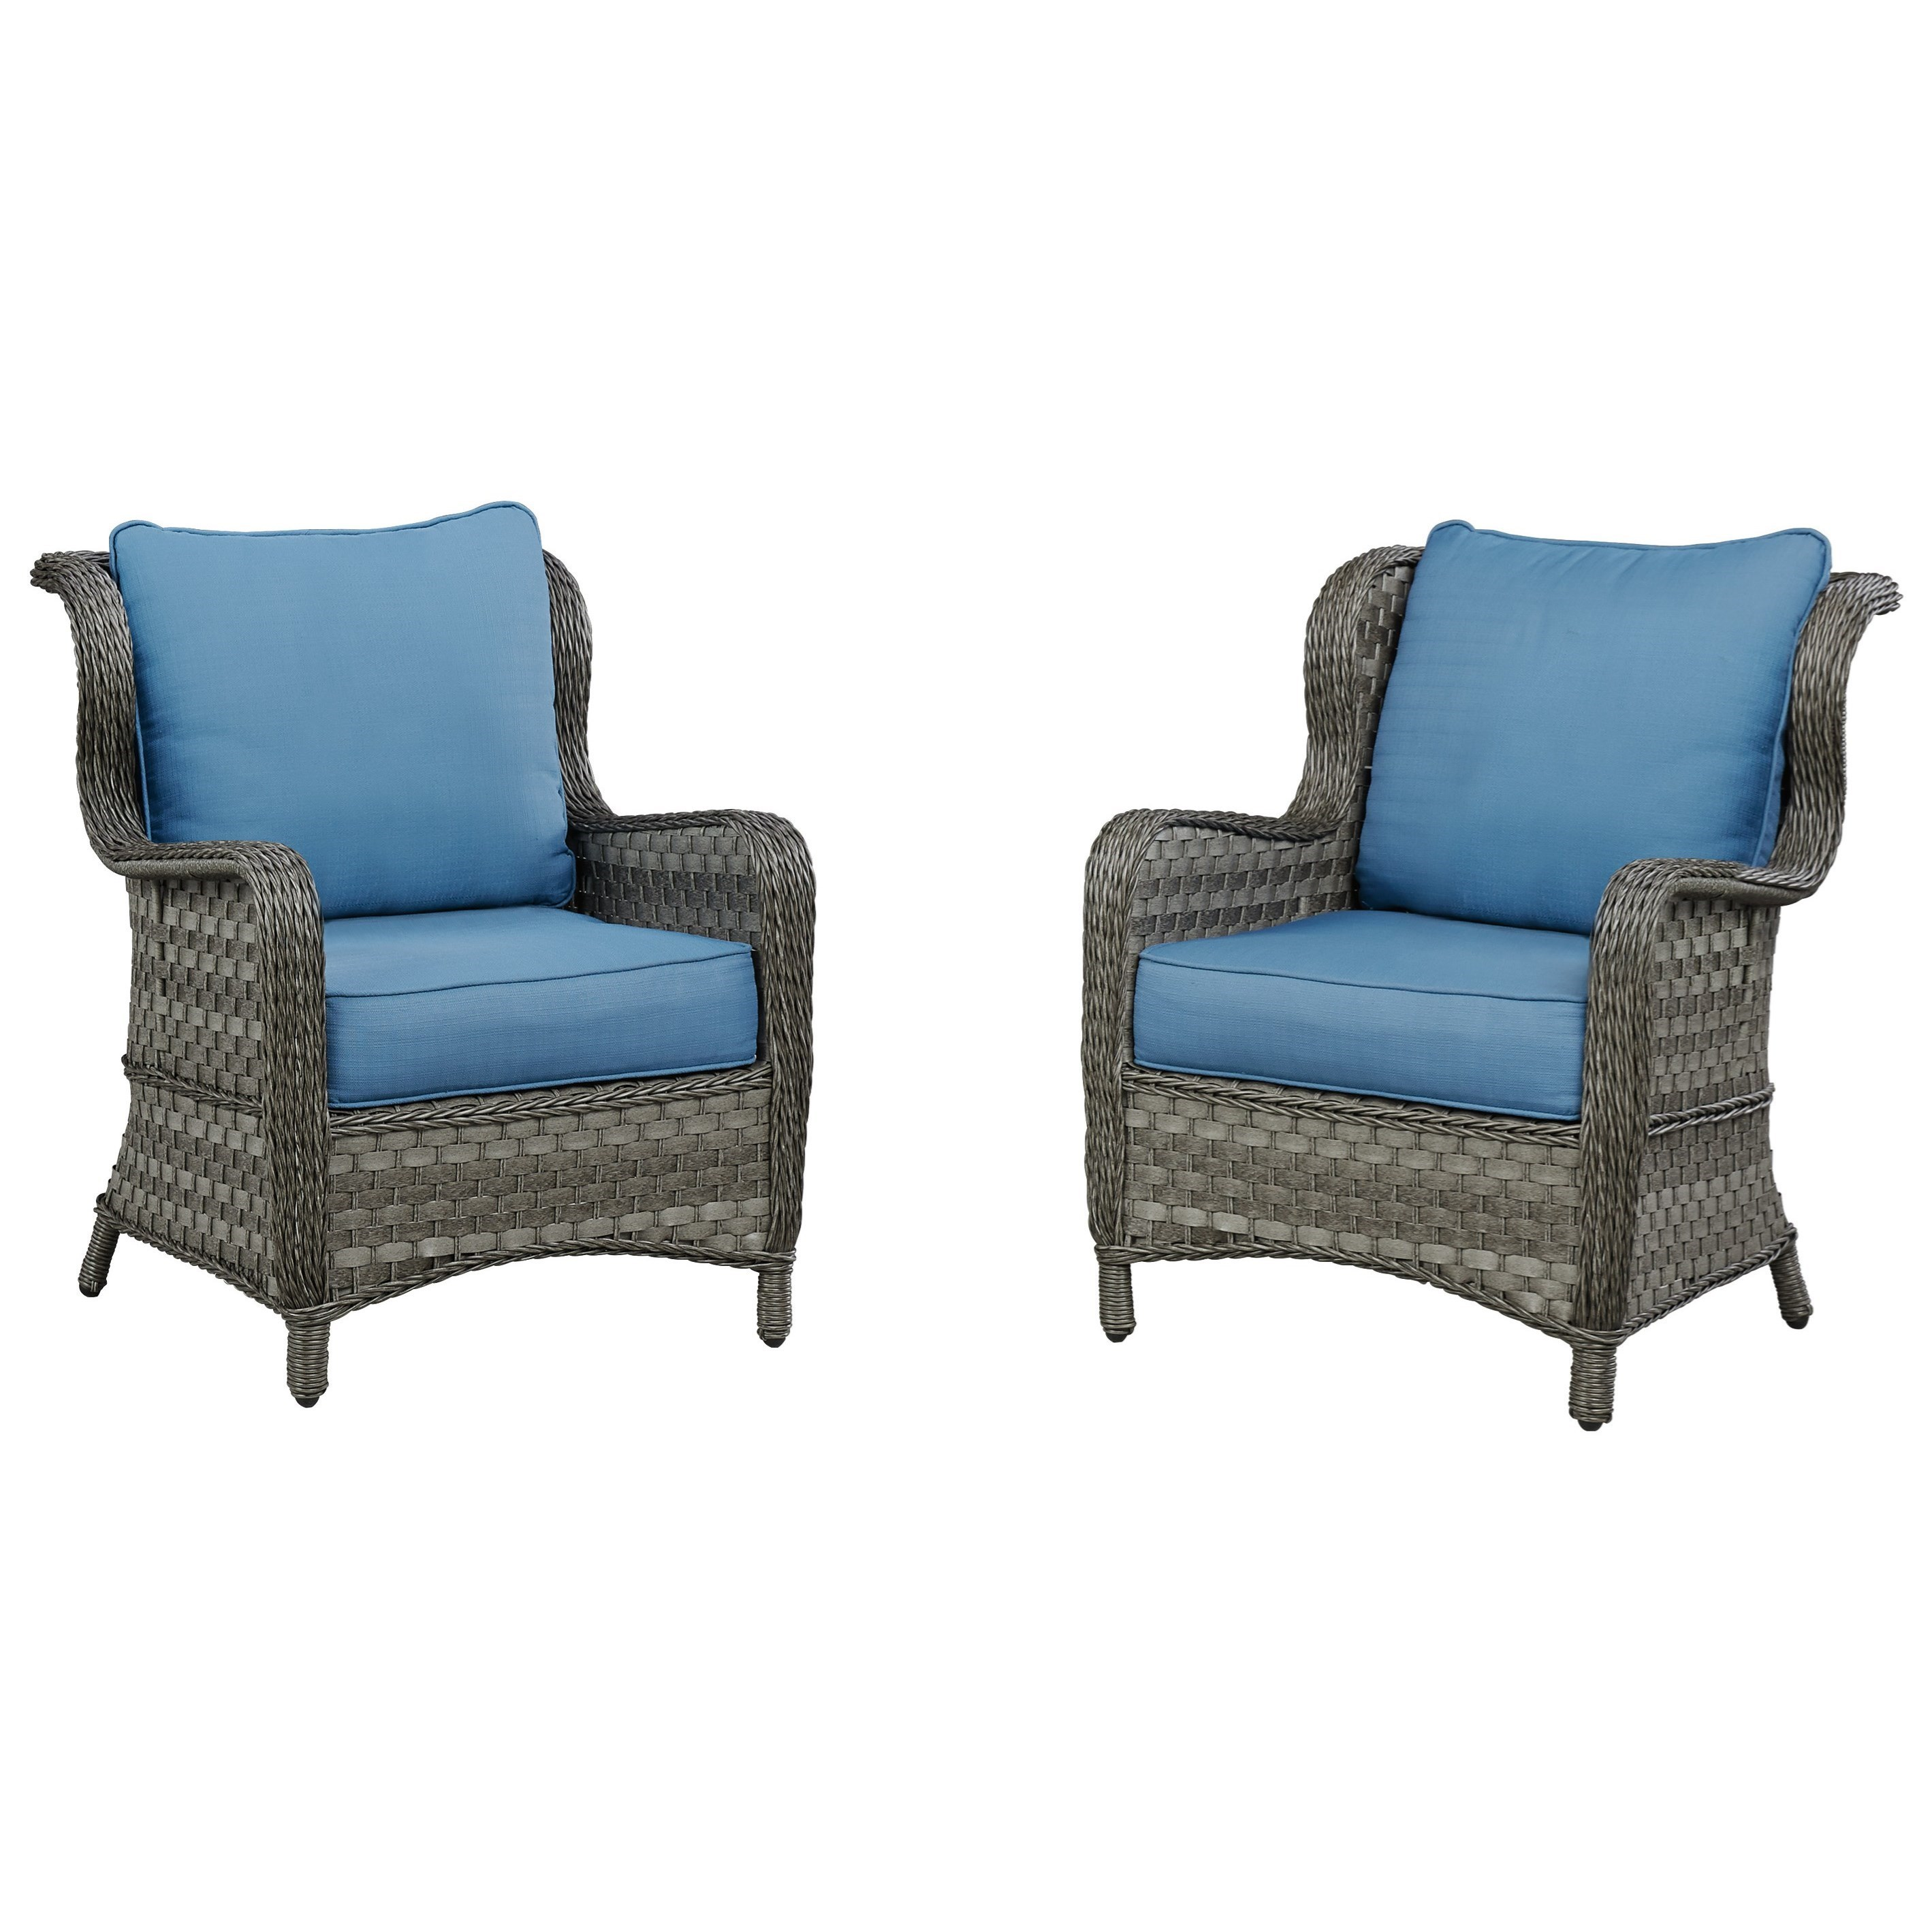 outdoor upholstered furniture. Signature Design By Ashley Abbots CourtSet Of 2 Outdoor Lounge Chairs W/ Cushion Upholstered Furniture H